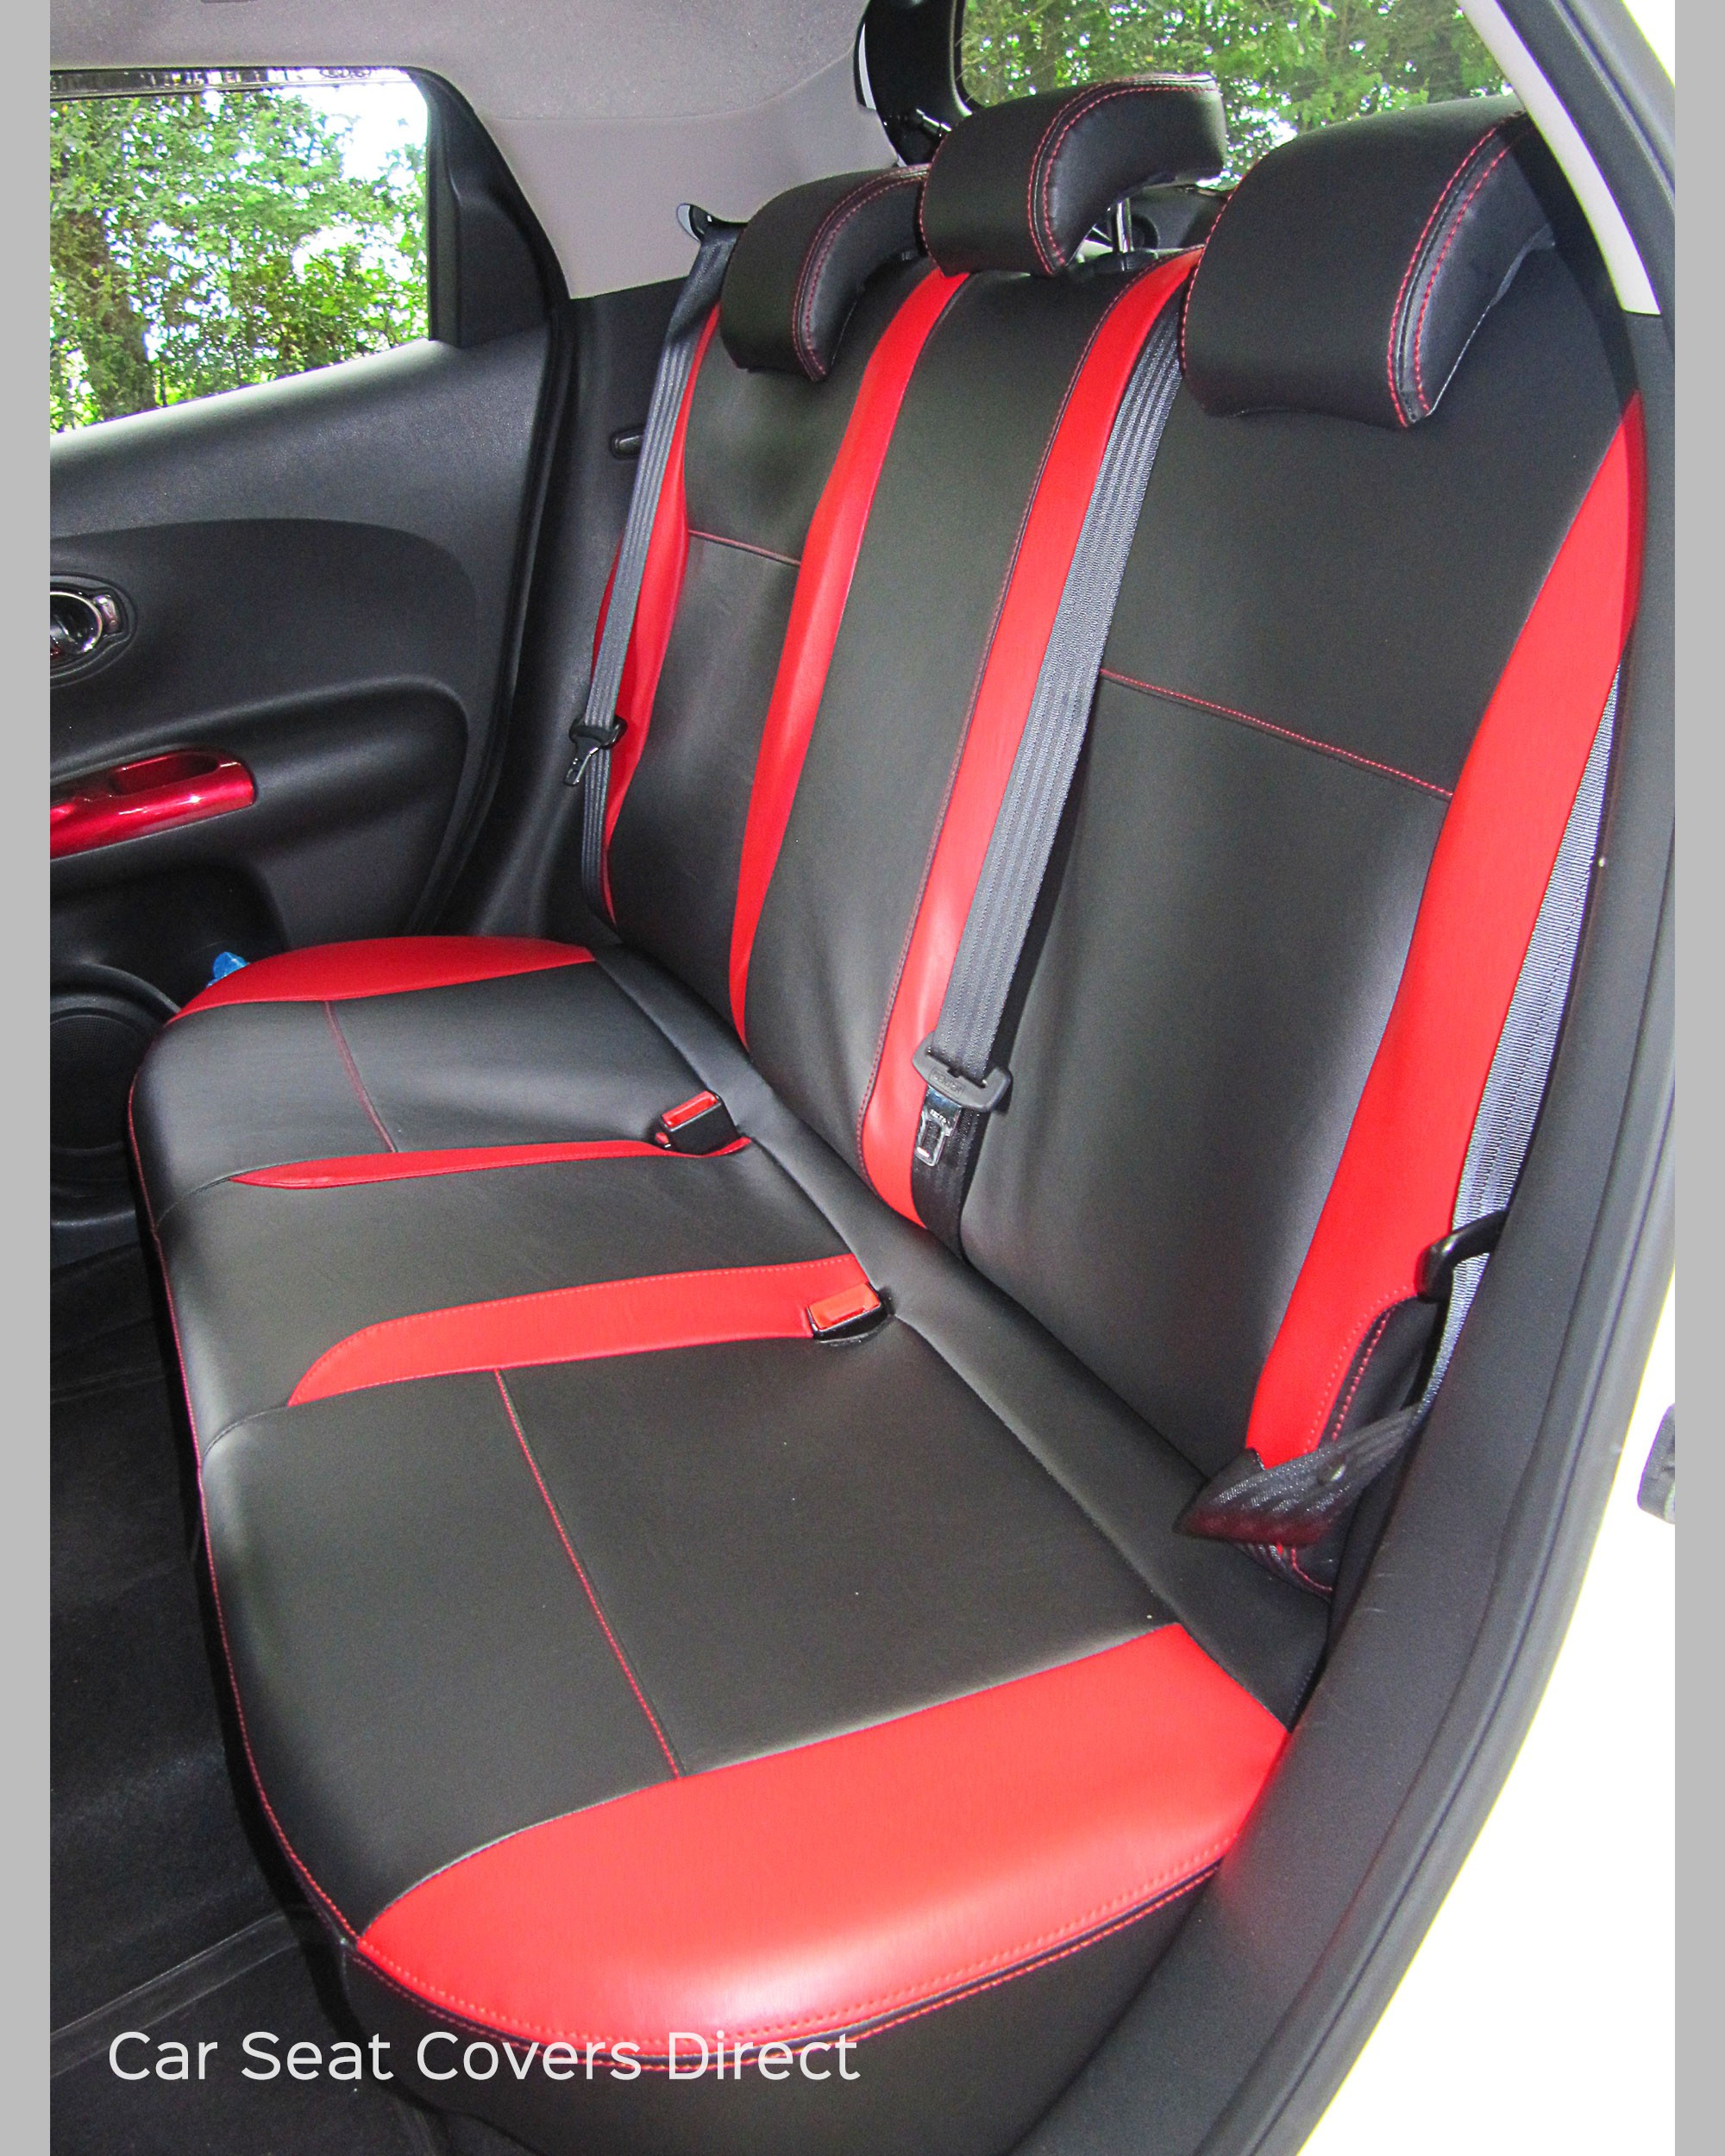 Nissan Juke Tailored Seat Covers Car Seat Covers Direct - Tailored ...